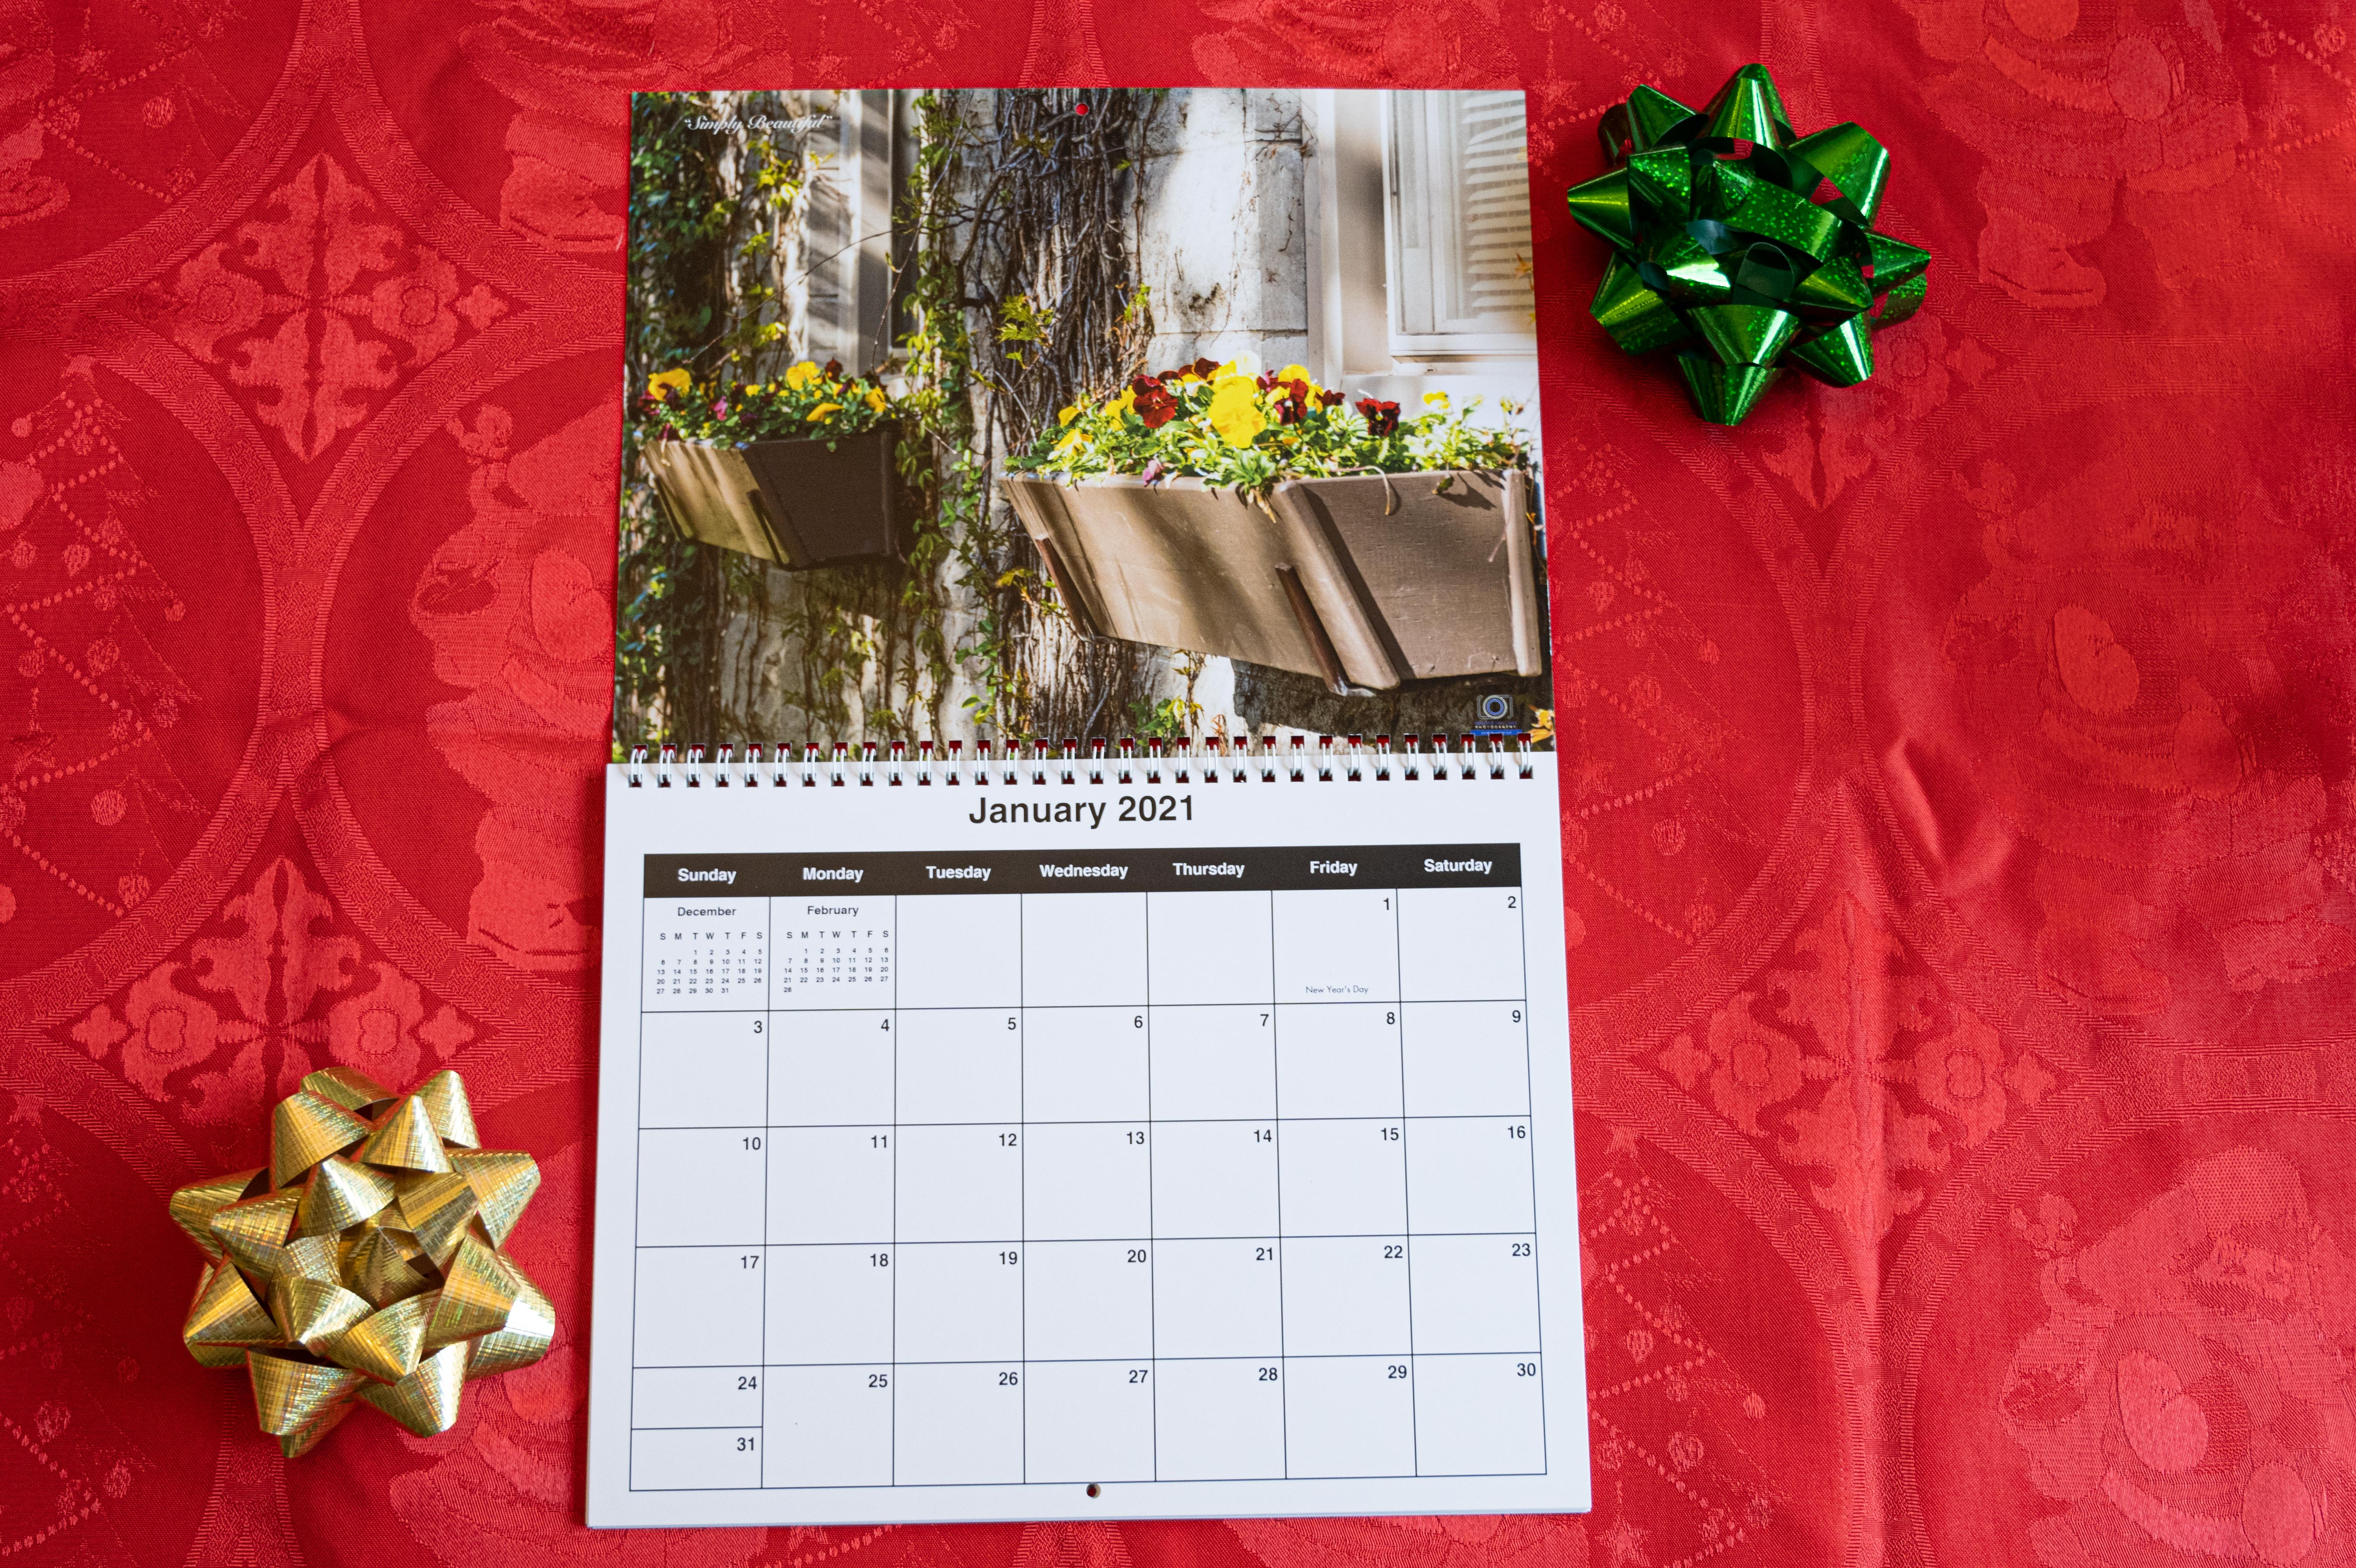 2021 Flowers and Trees Calendar